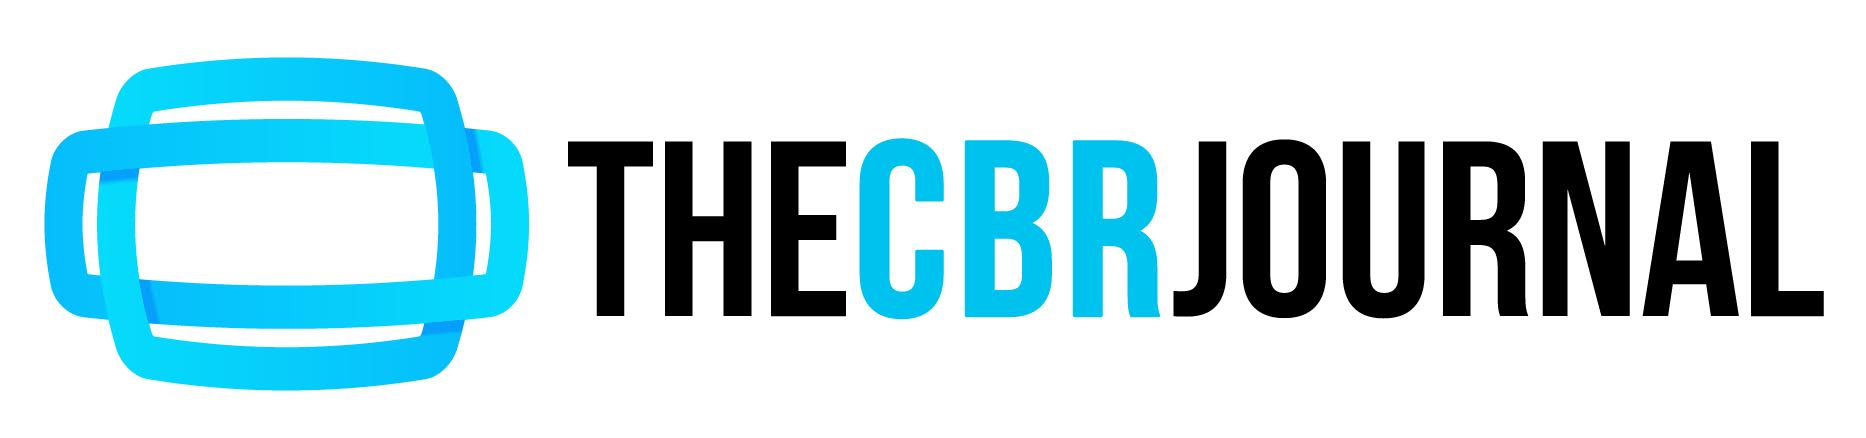 CBR Journal Logo.jpg